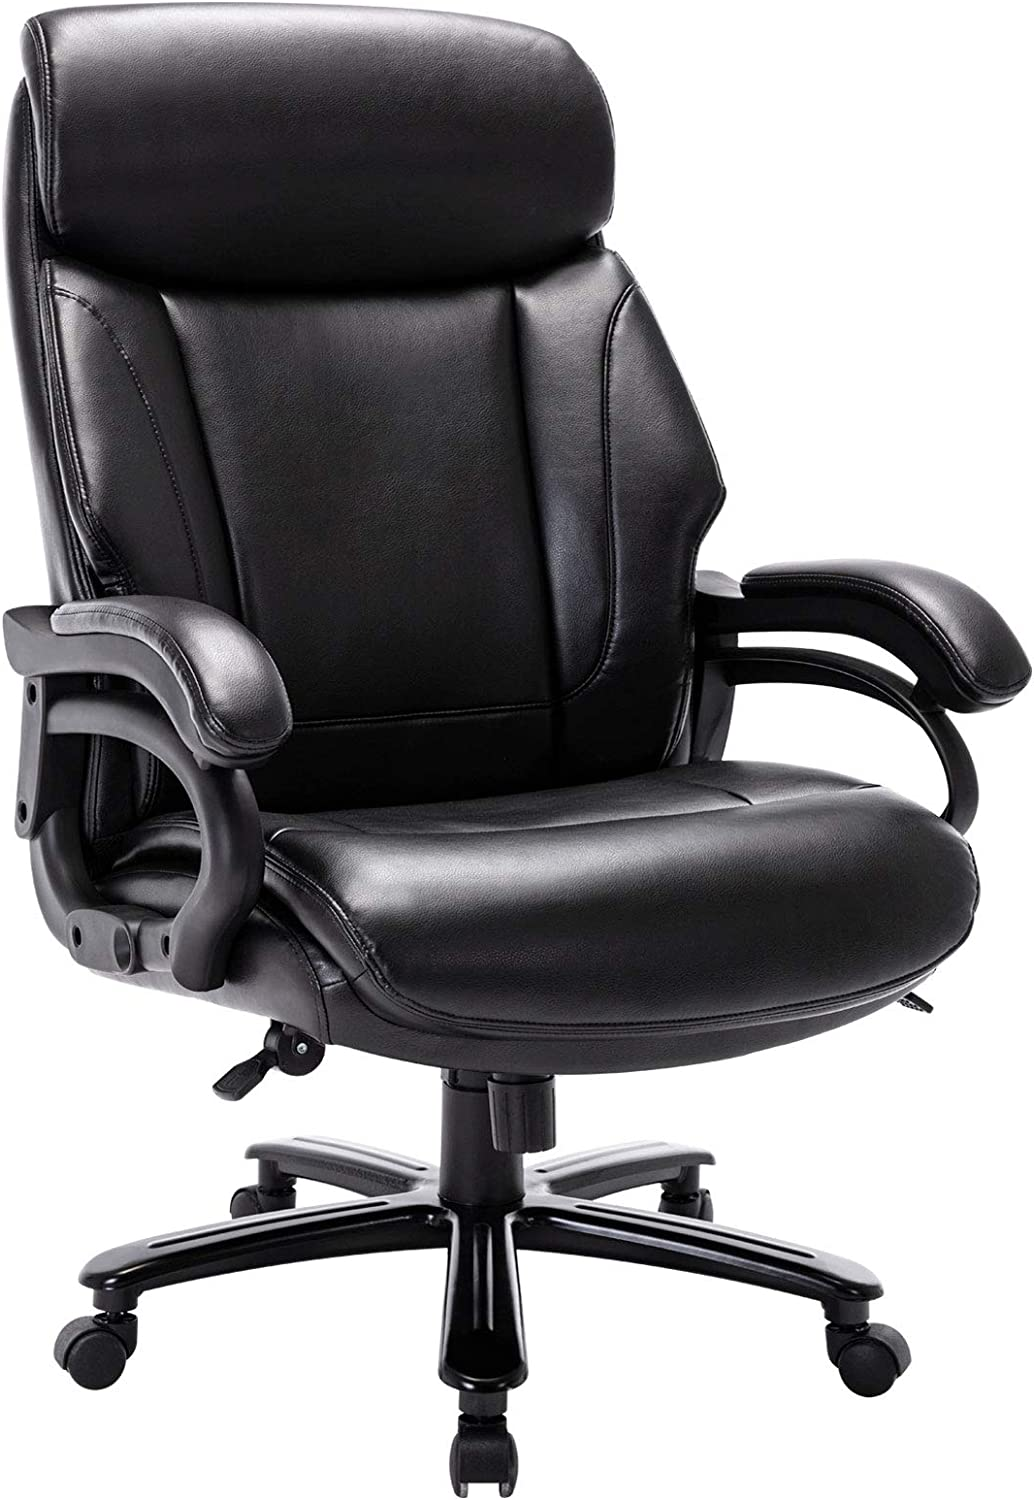 STARSPACE High Back Big & Tall 400lb Bonded Leather Office Chair Large Executive Desk Computer Swivel Chair - Heavy Duty Metal Base, Adjustable Tilt Angle, Ergonomic Design for Lumbar Support: Office Products